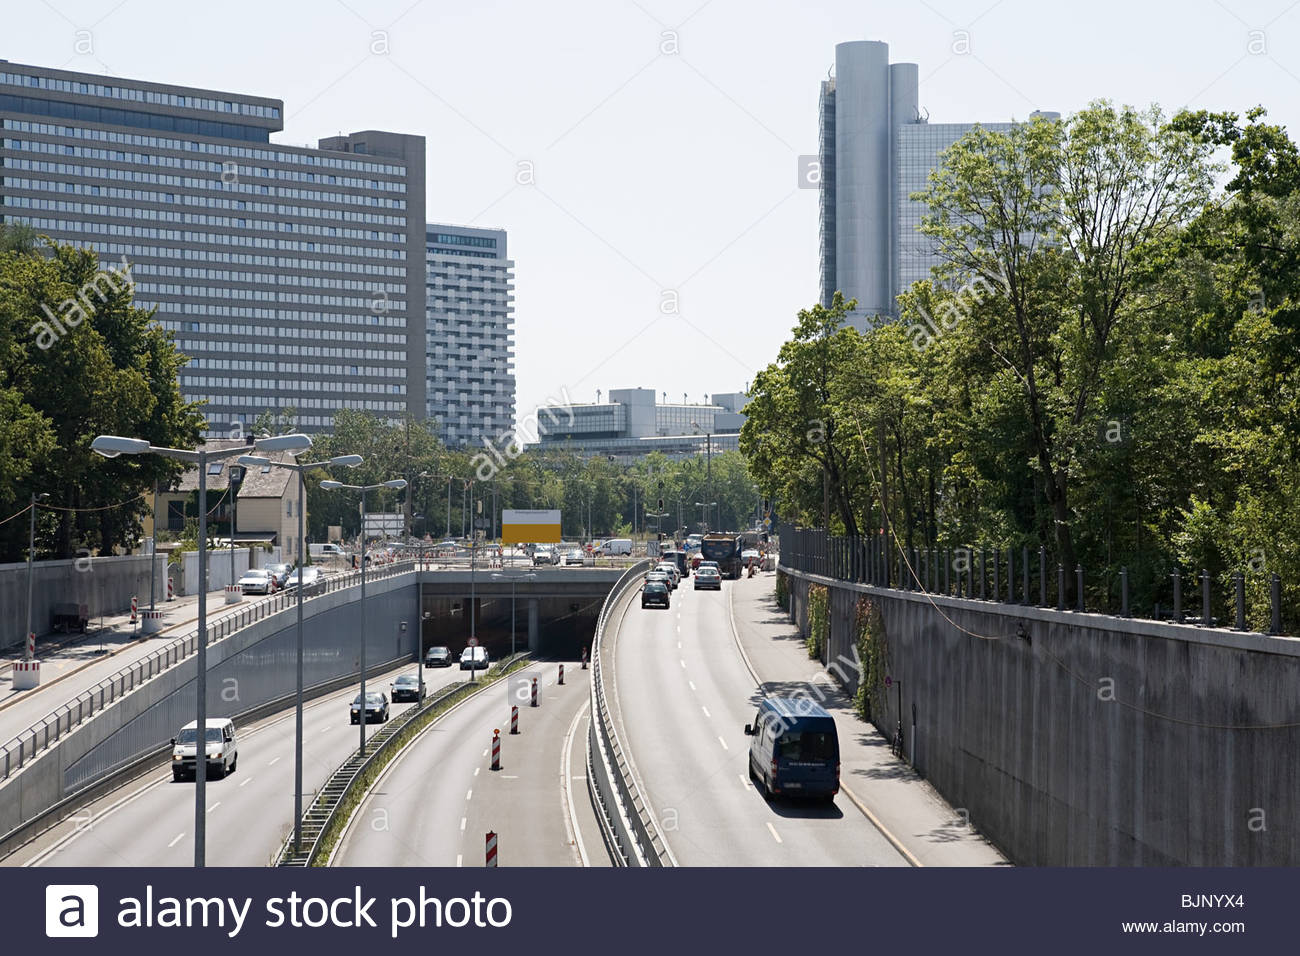 City motorway in munich Stock Photo